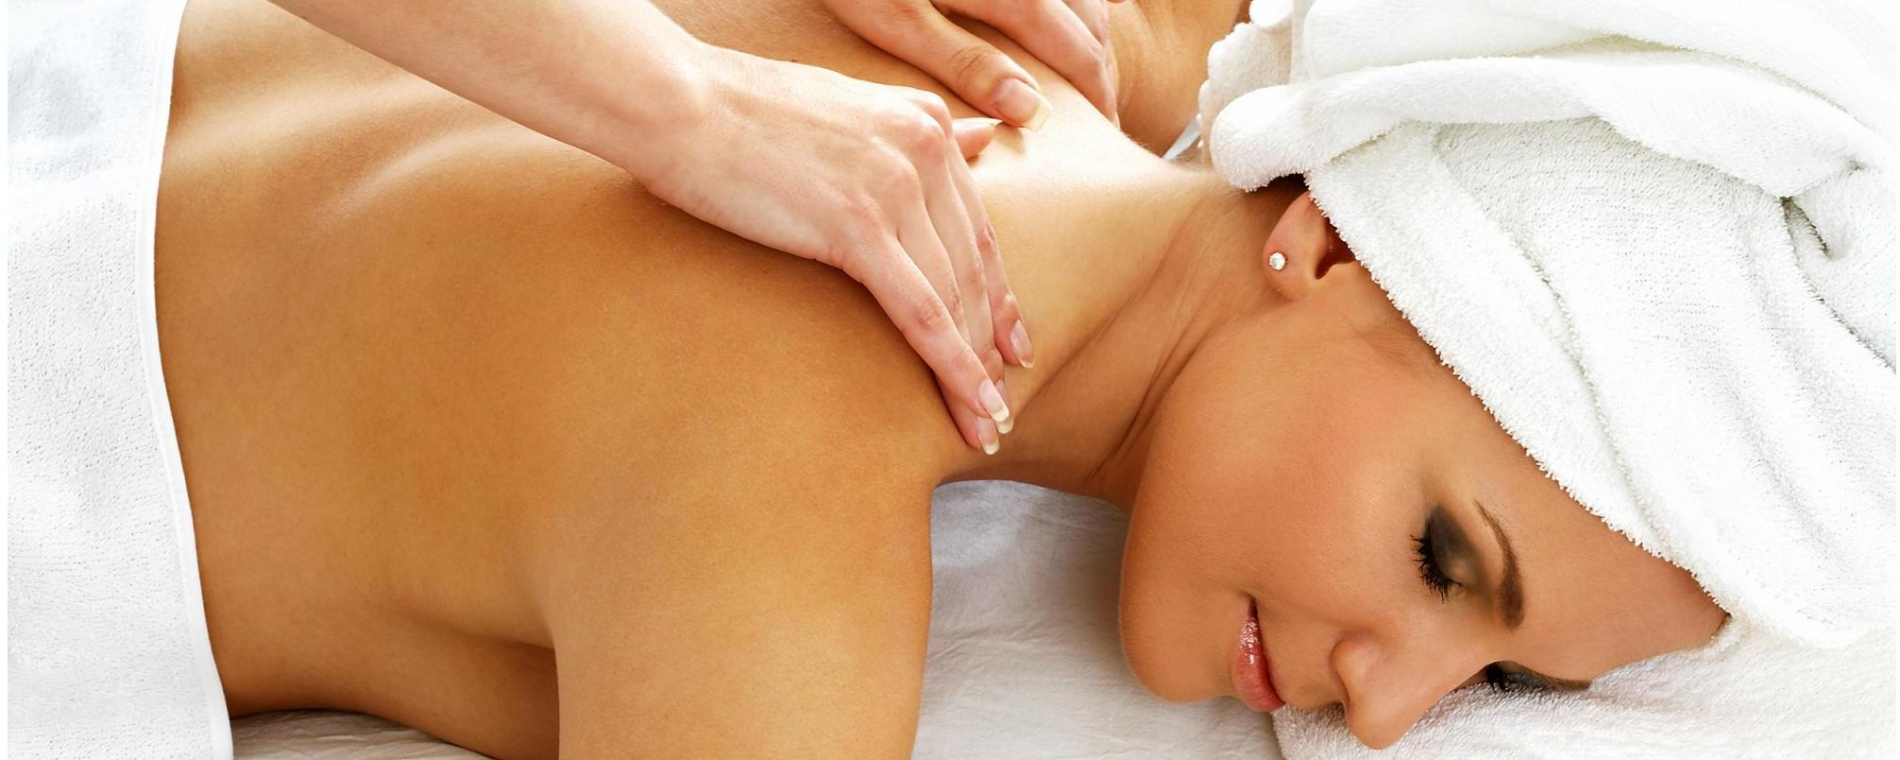 Massage; ©Syda Productions/Fotolia.com